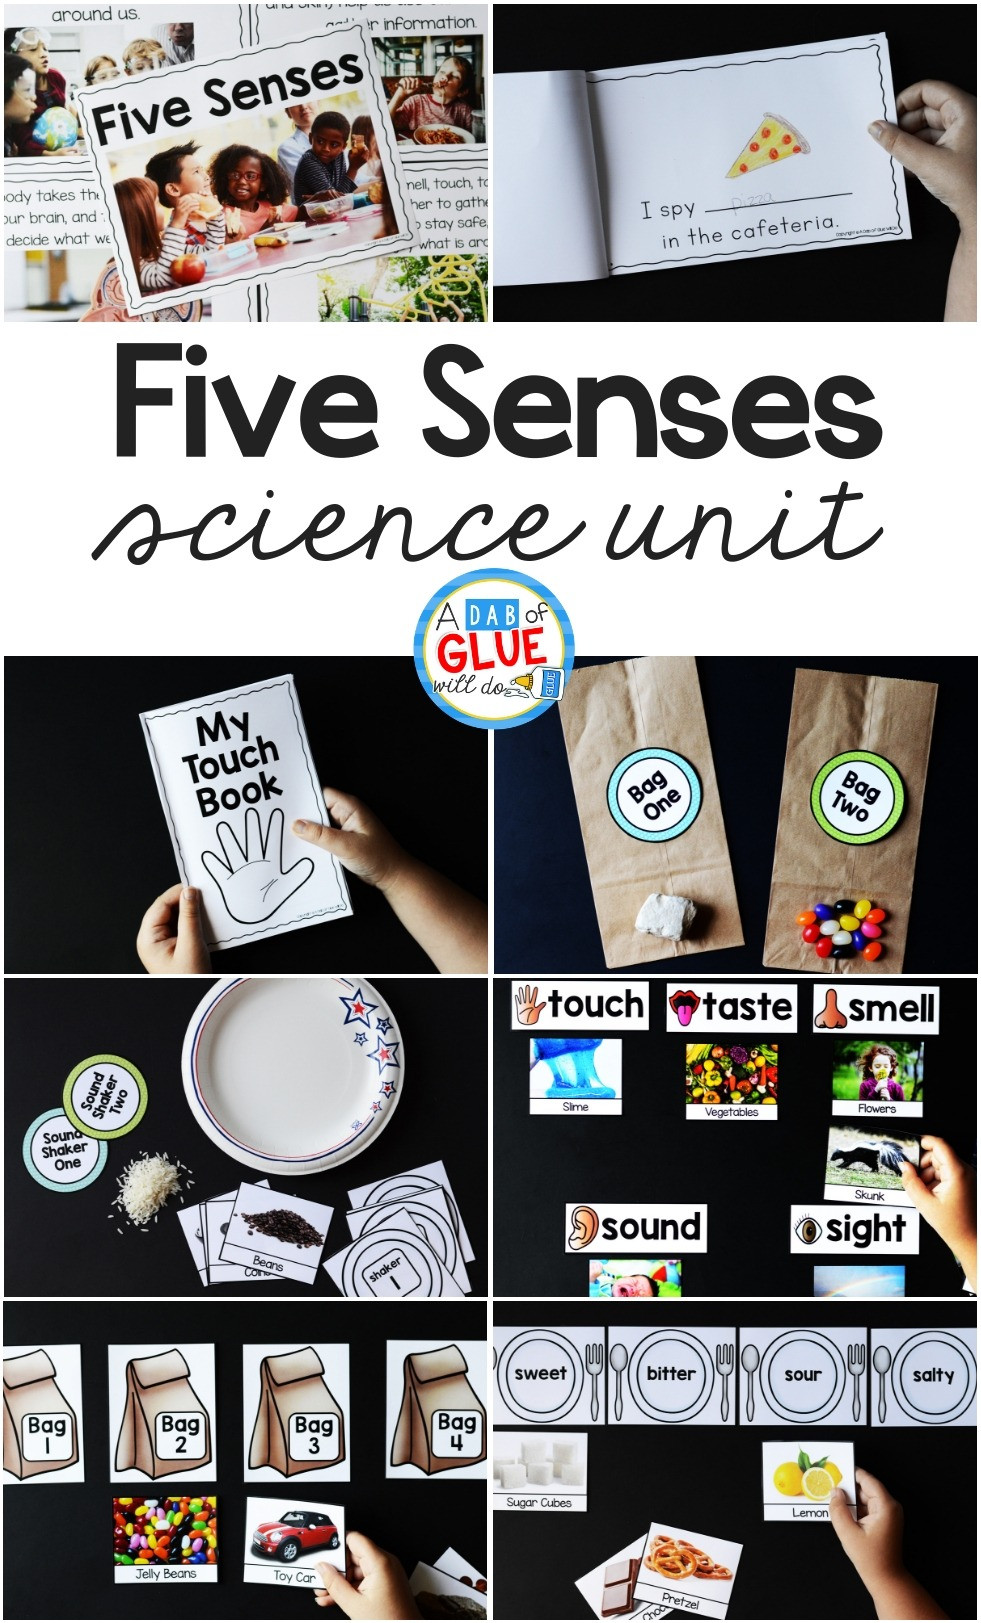 5 Senses Worksheet Preschool Five Senses Science Unit Hands On Learning Activity